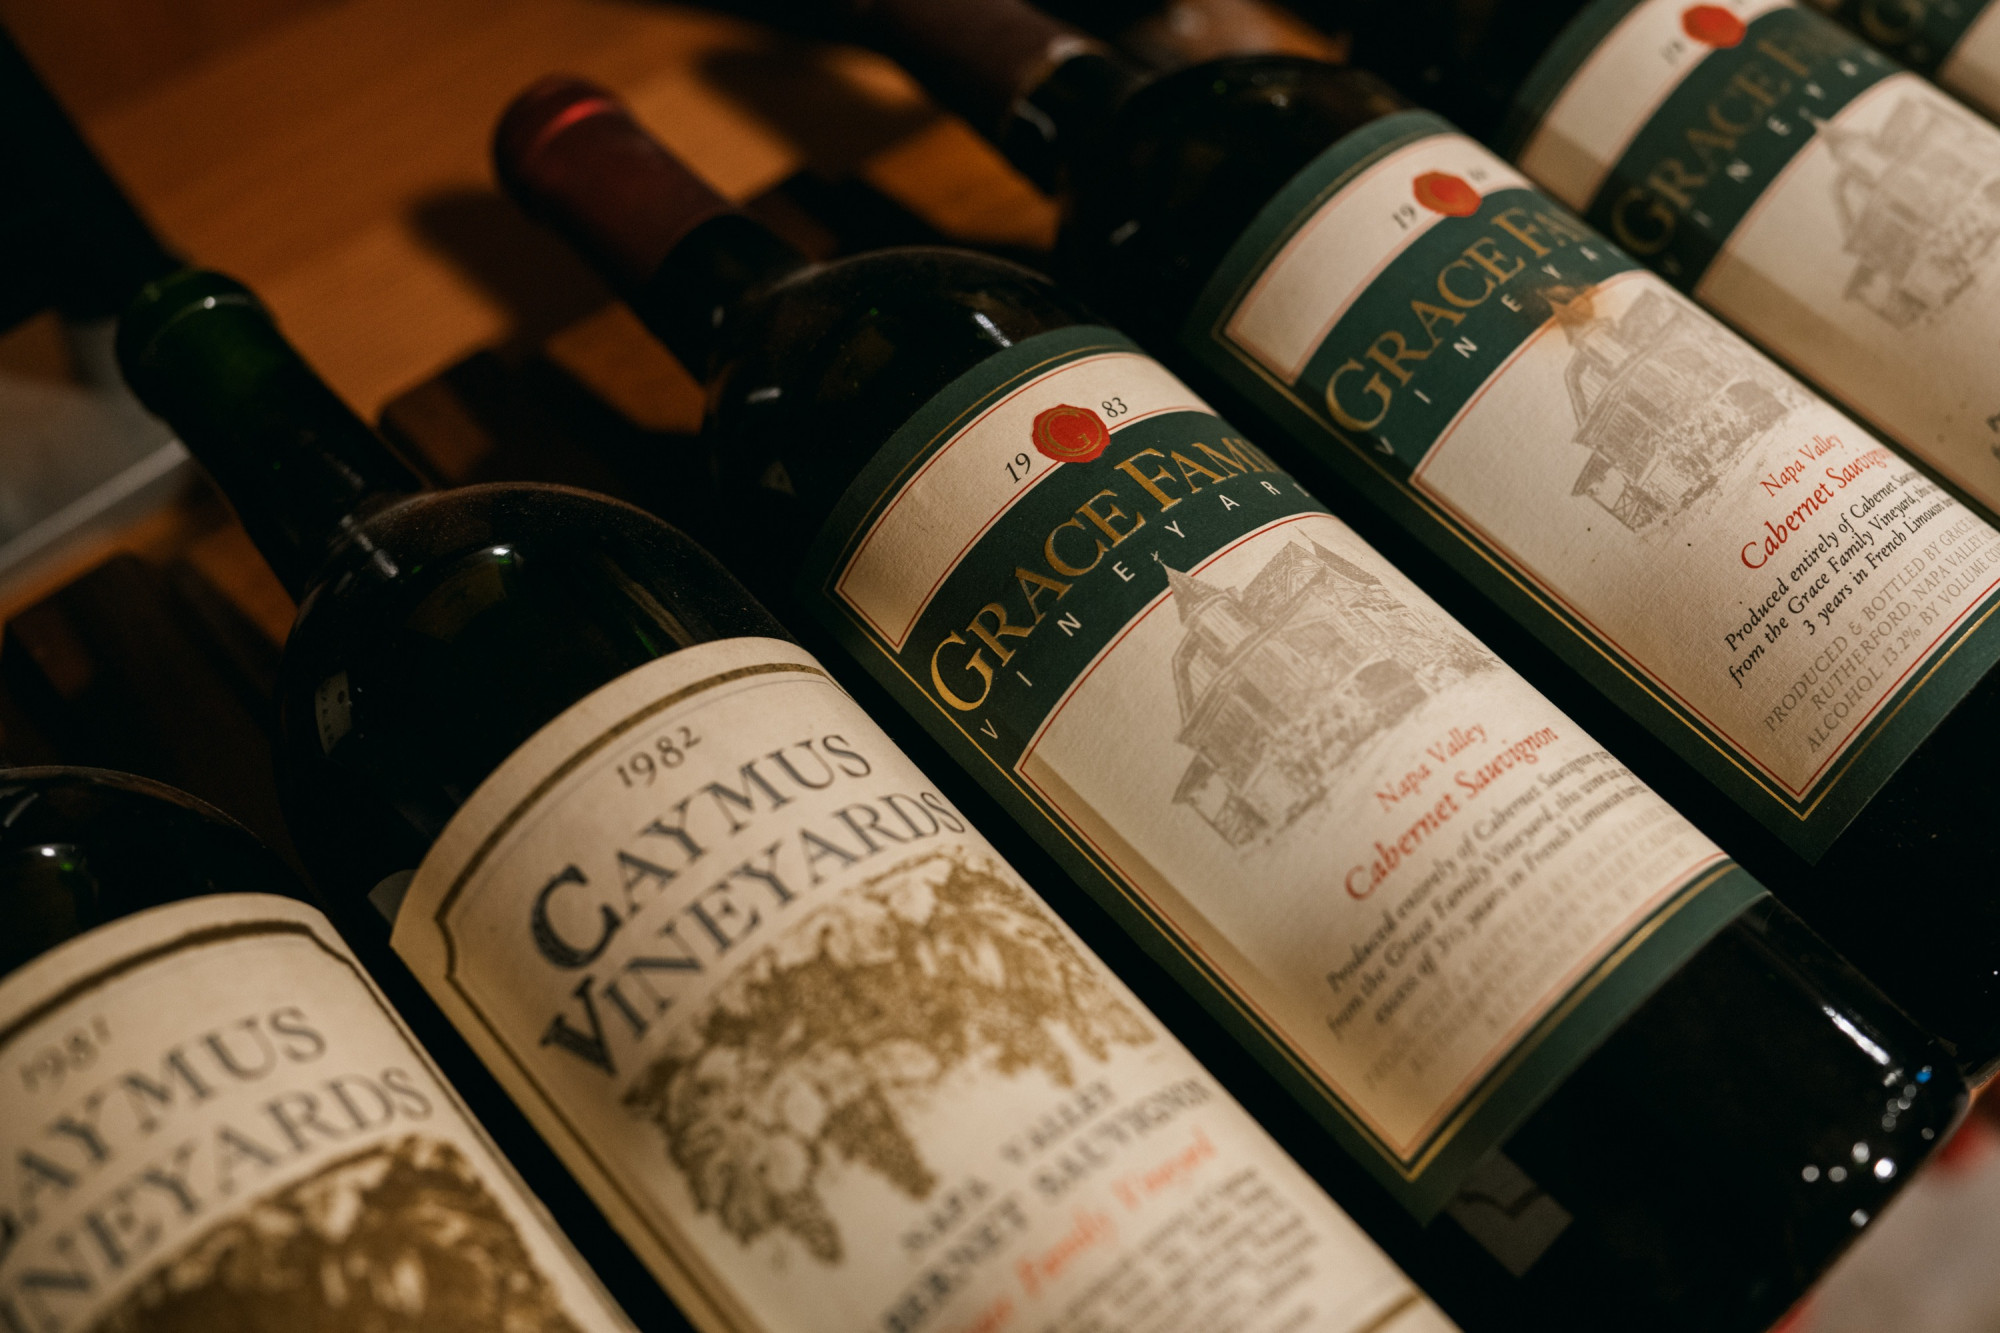 Bottles of Caymus and early Grace Estate wines in the cellar